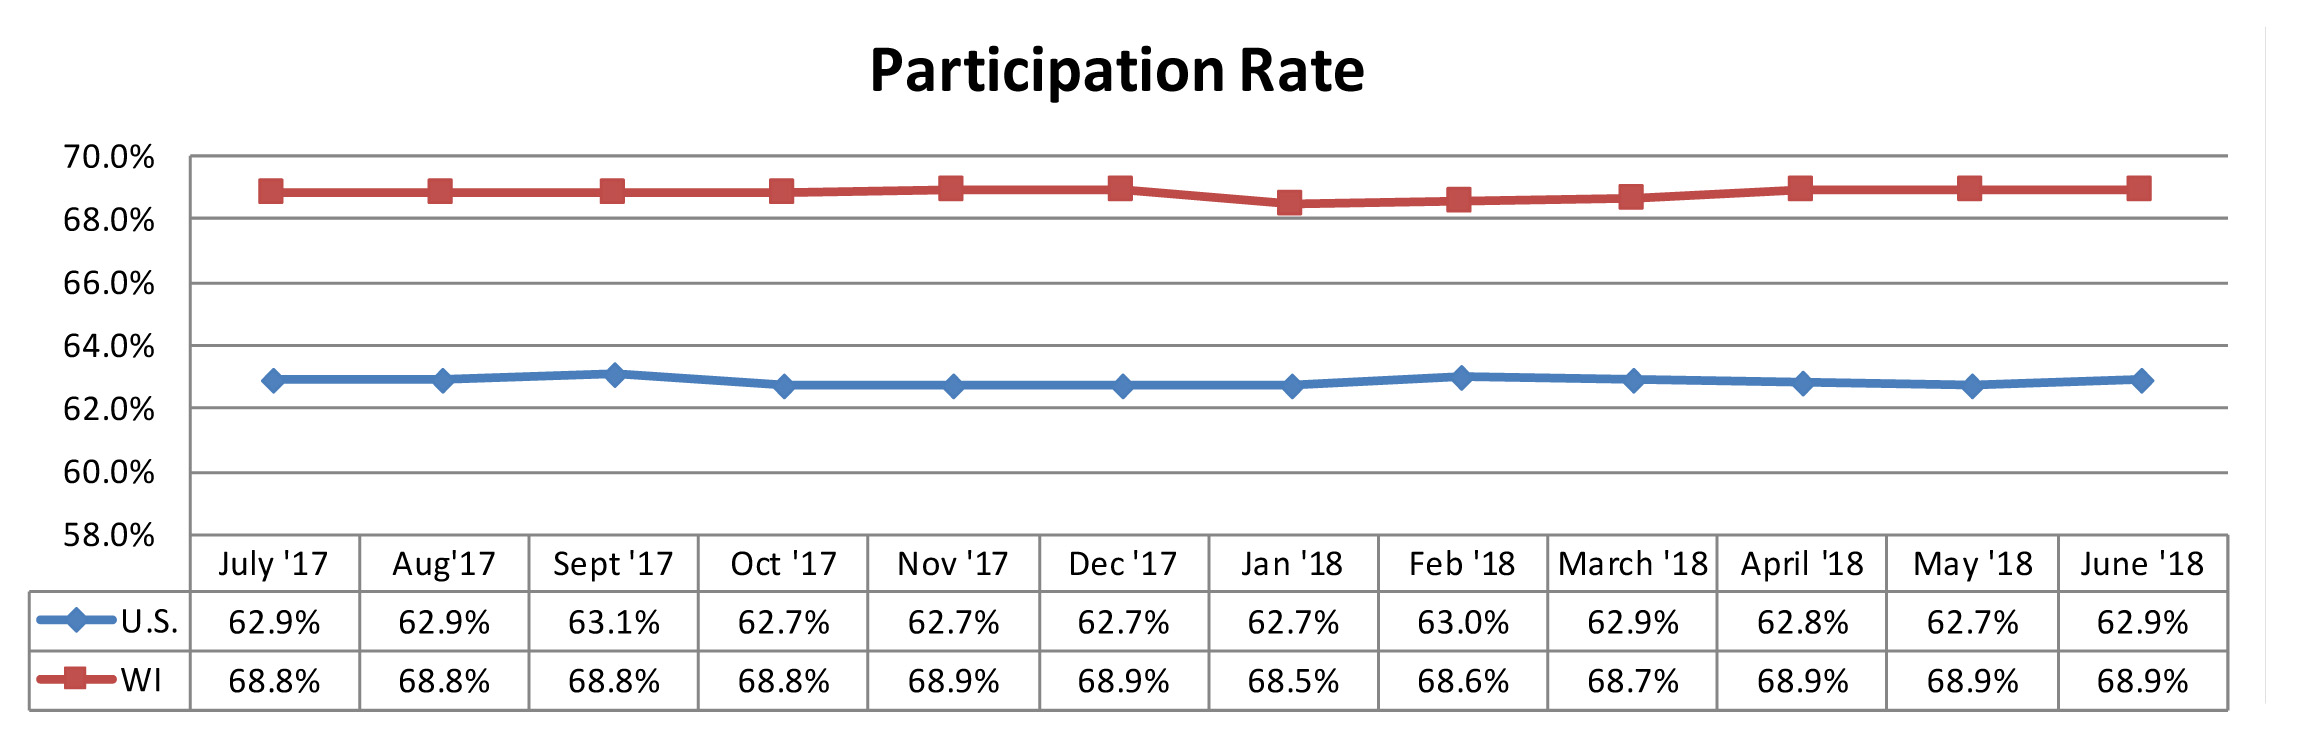 June 2018 Participation Rate